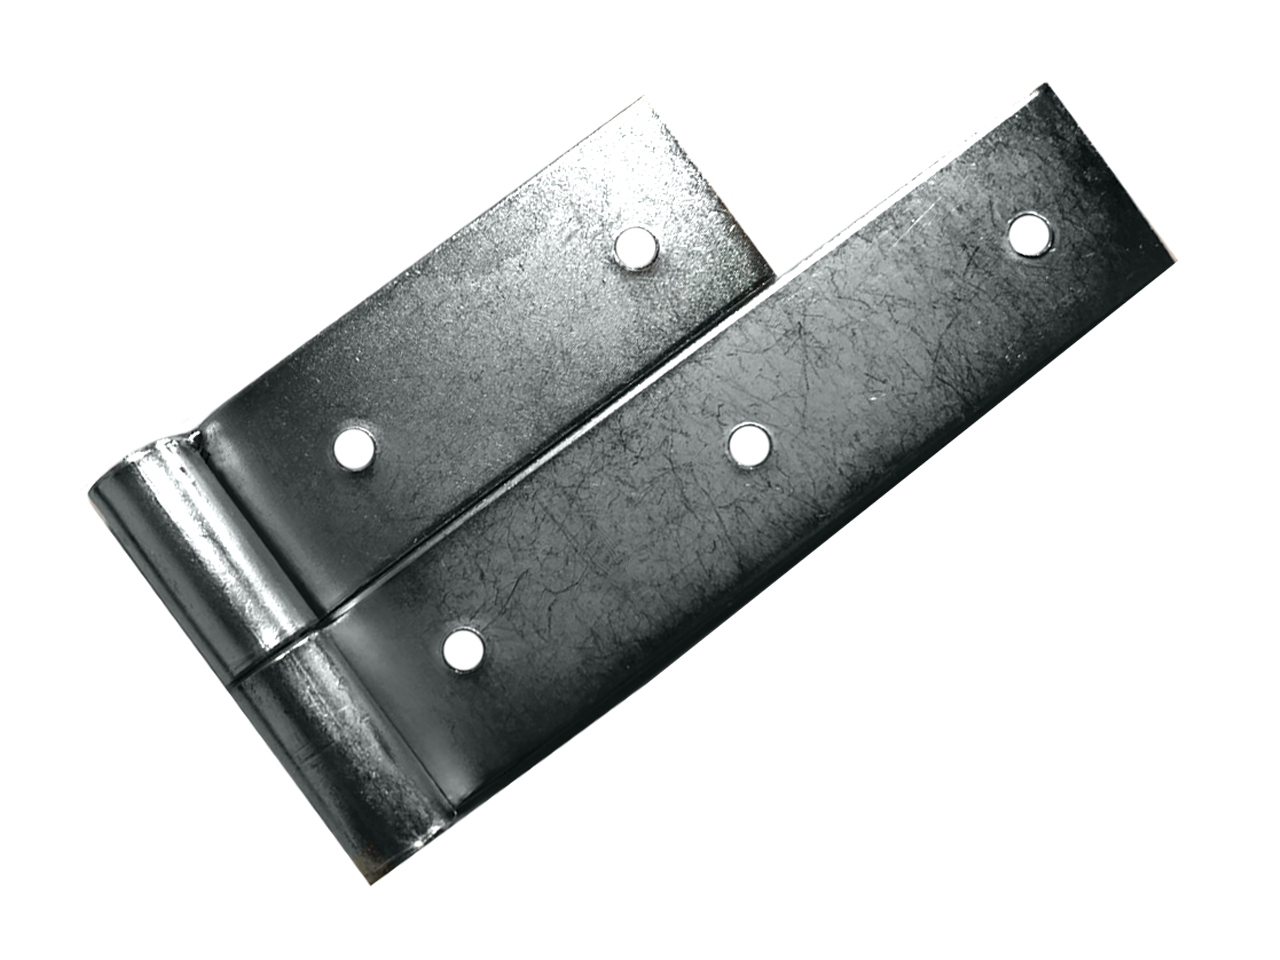 Hinge for the gate